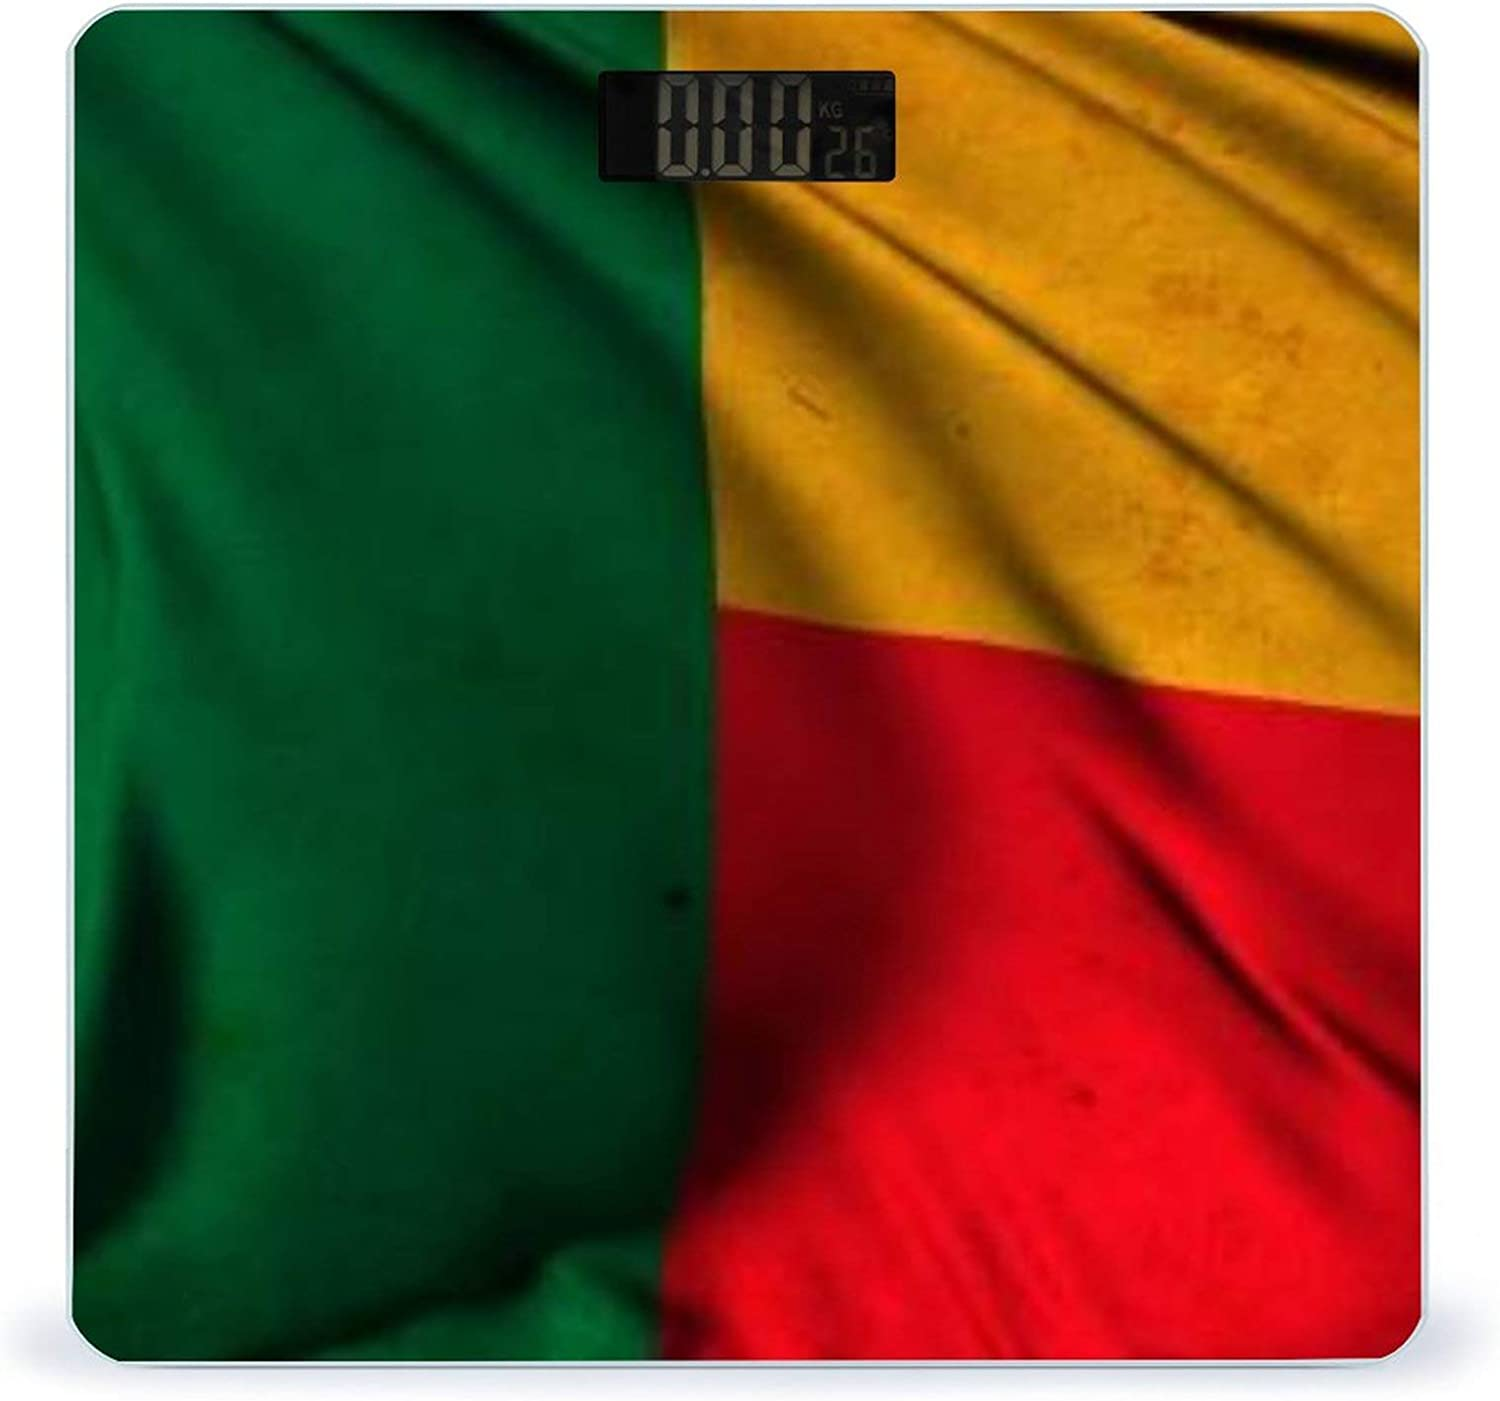 CHUFZSD Grunge Flag of Benin Reservation Smart Fitness Accurate Mail order Highly Scale